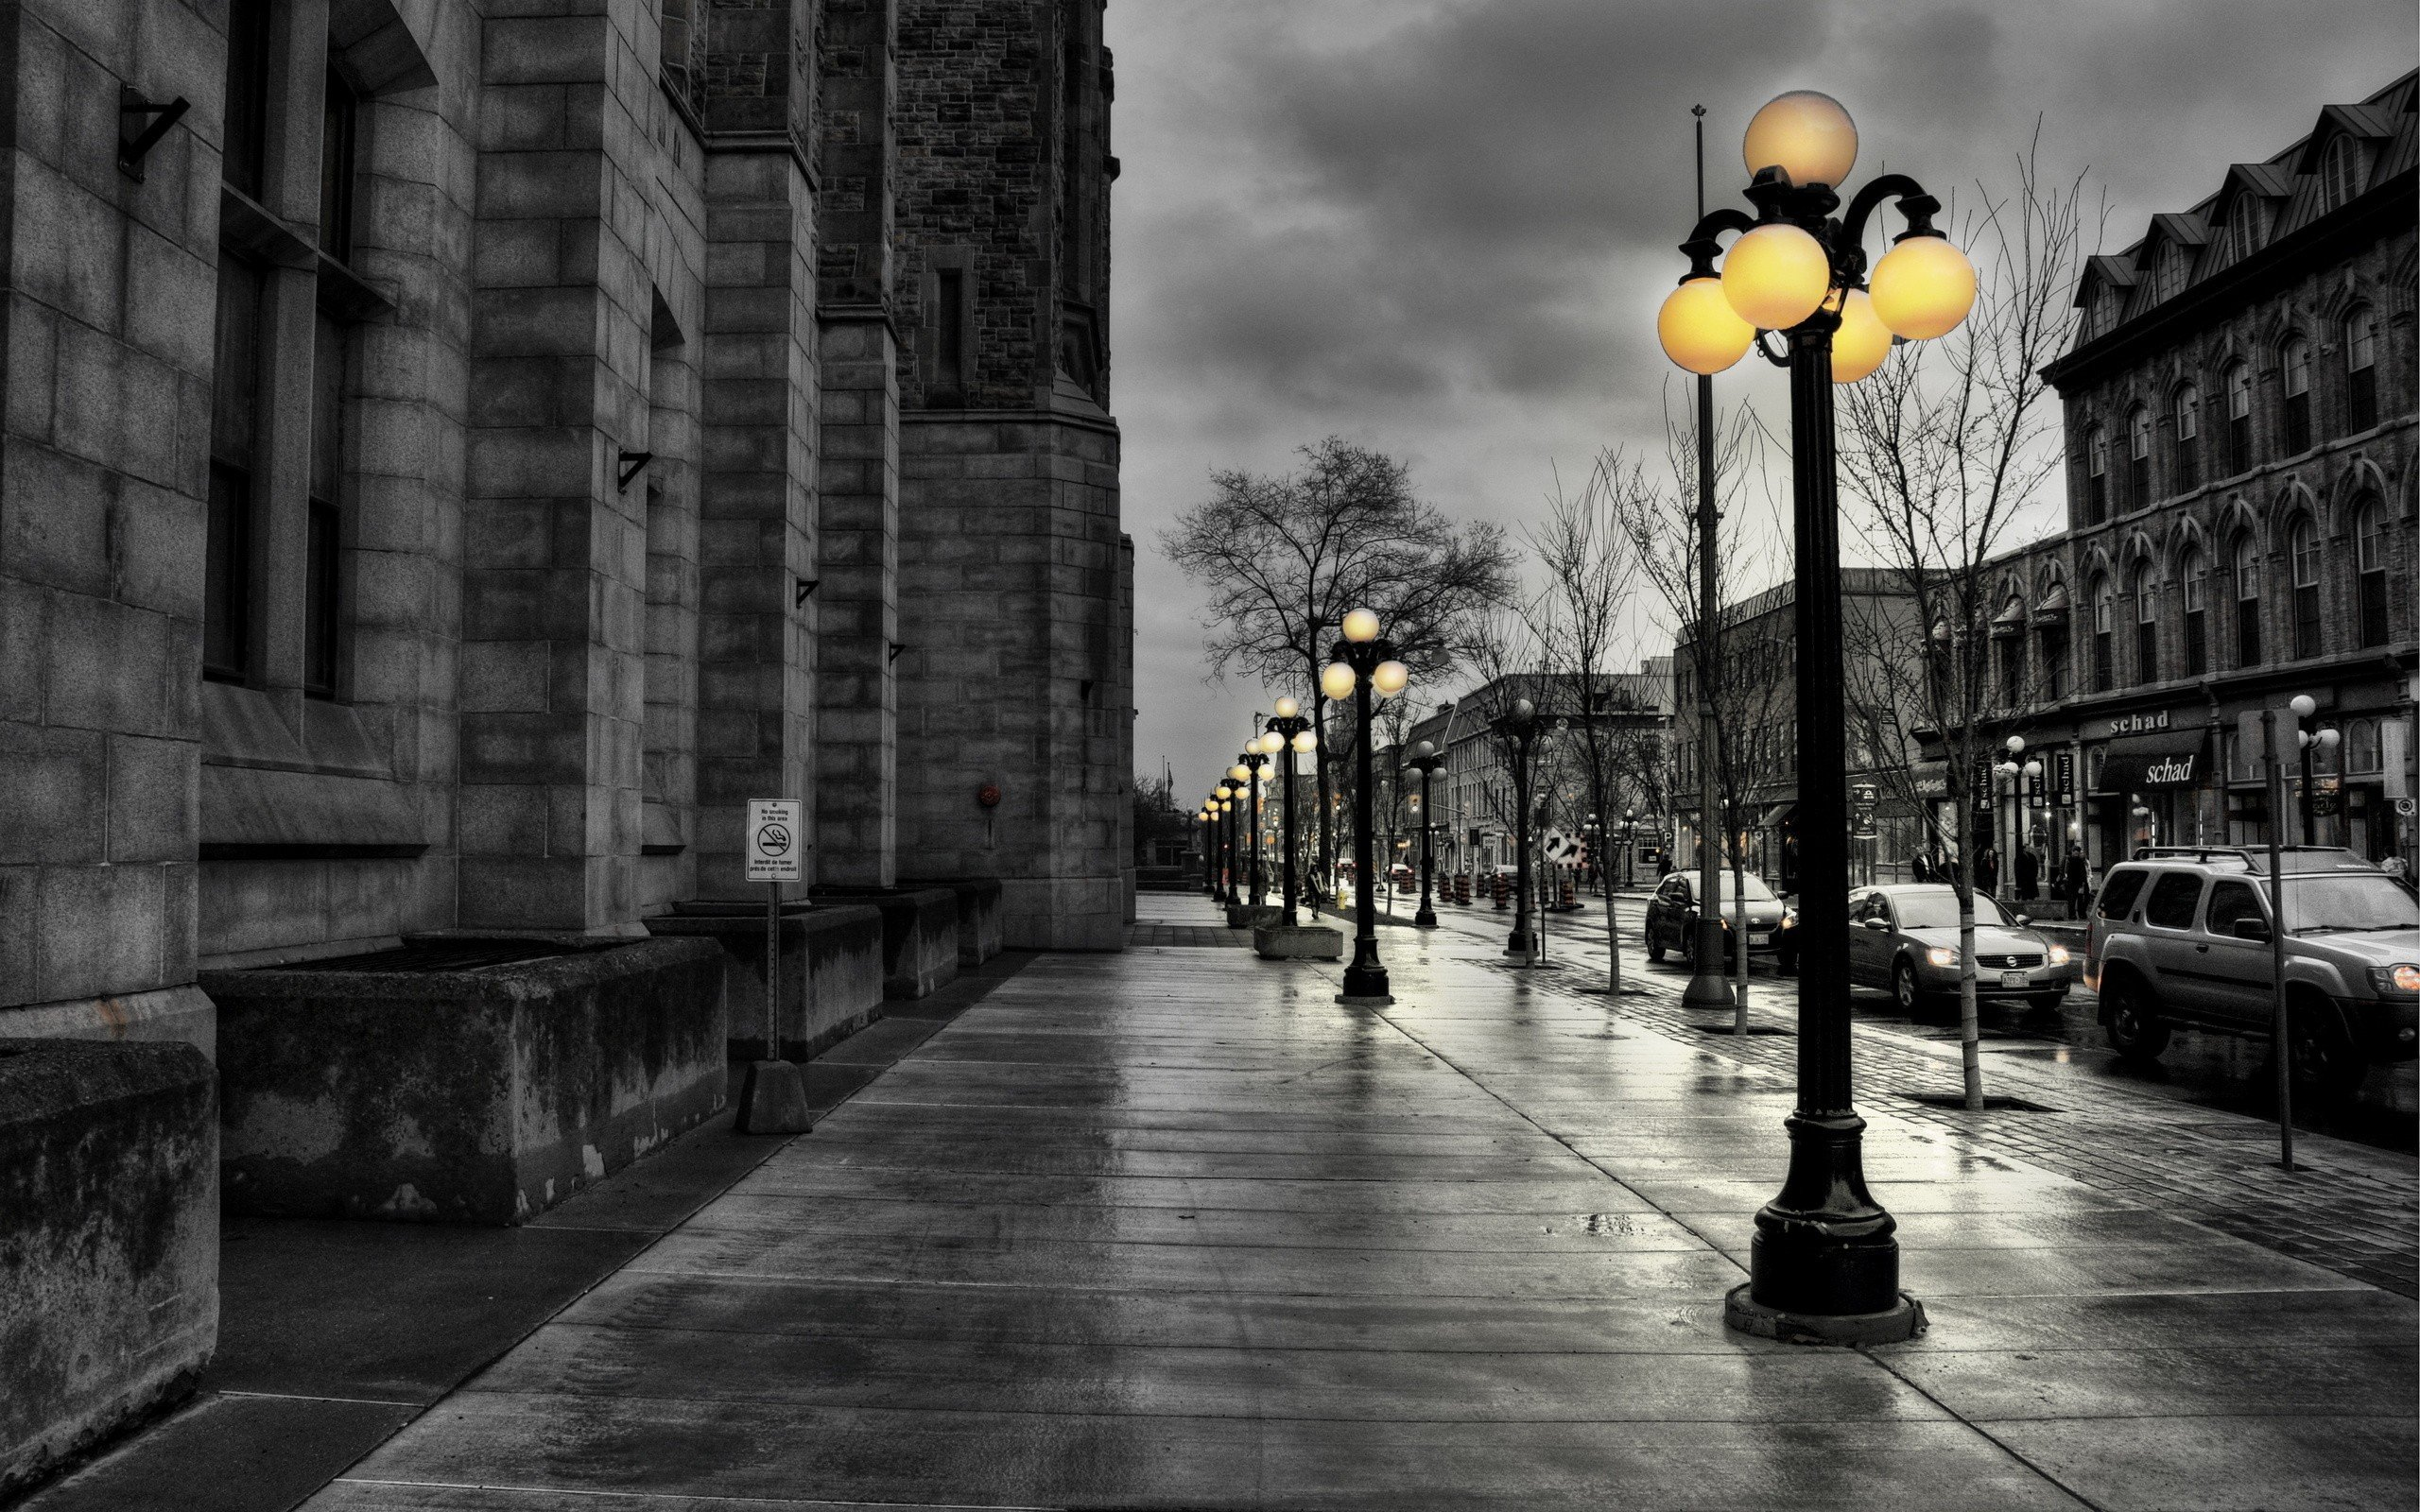 cityscapes streets lanterns HDR photography selective coloring